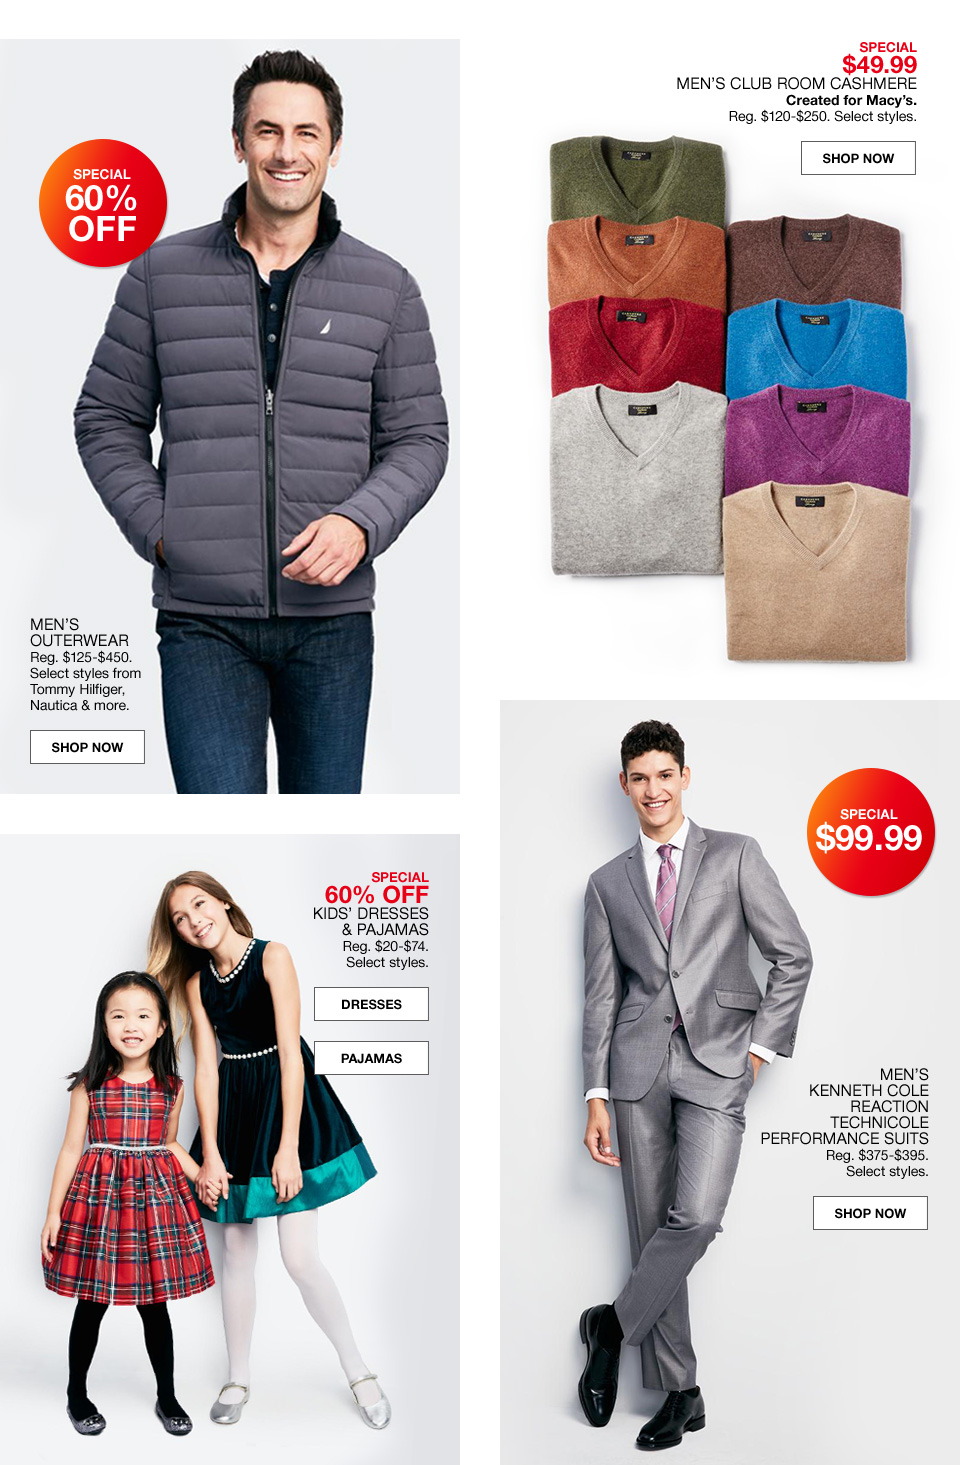 Special 60 Percent Off Mens Outerware Regular 125 To 450 Dollars Select Styles From